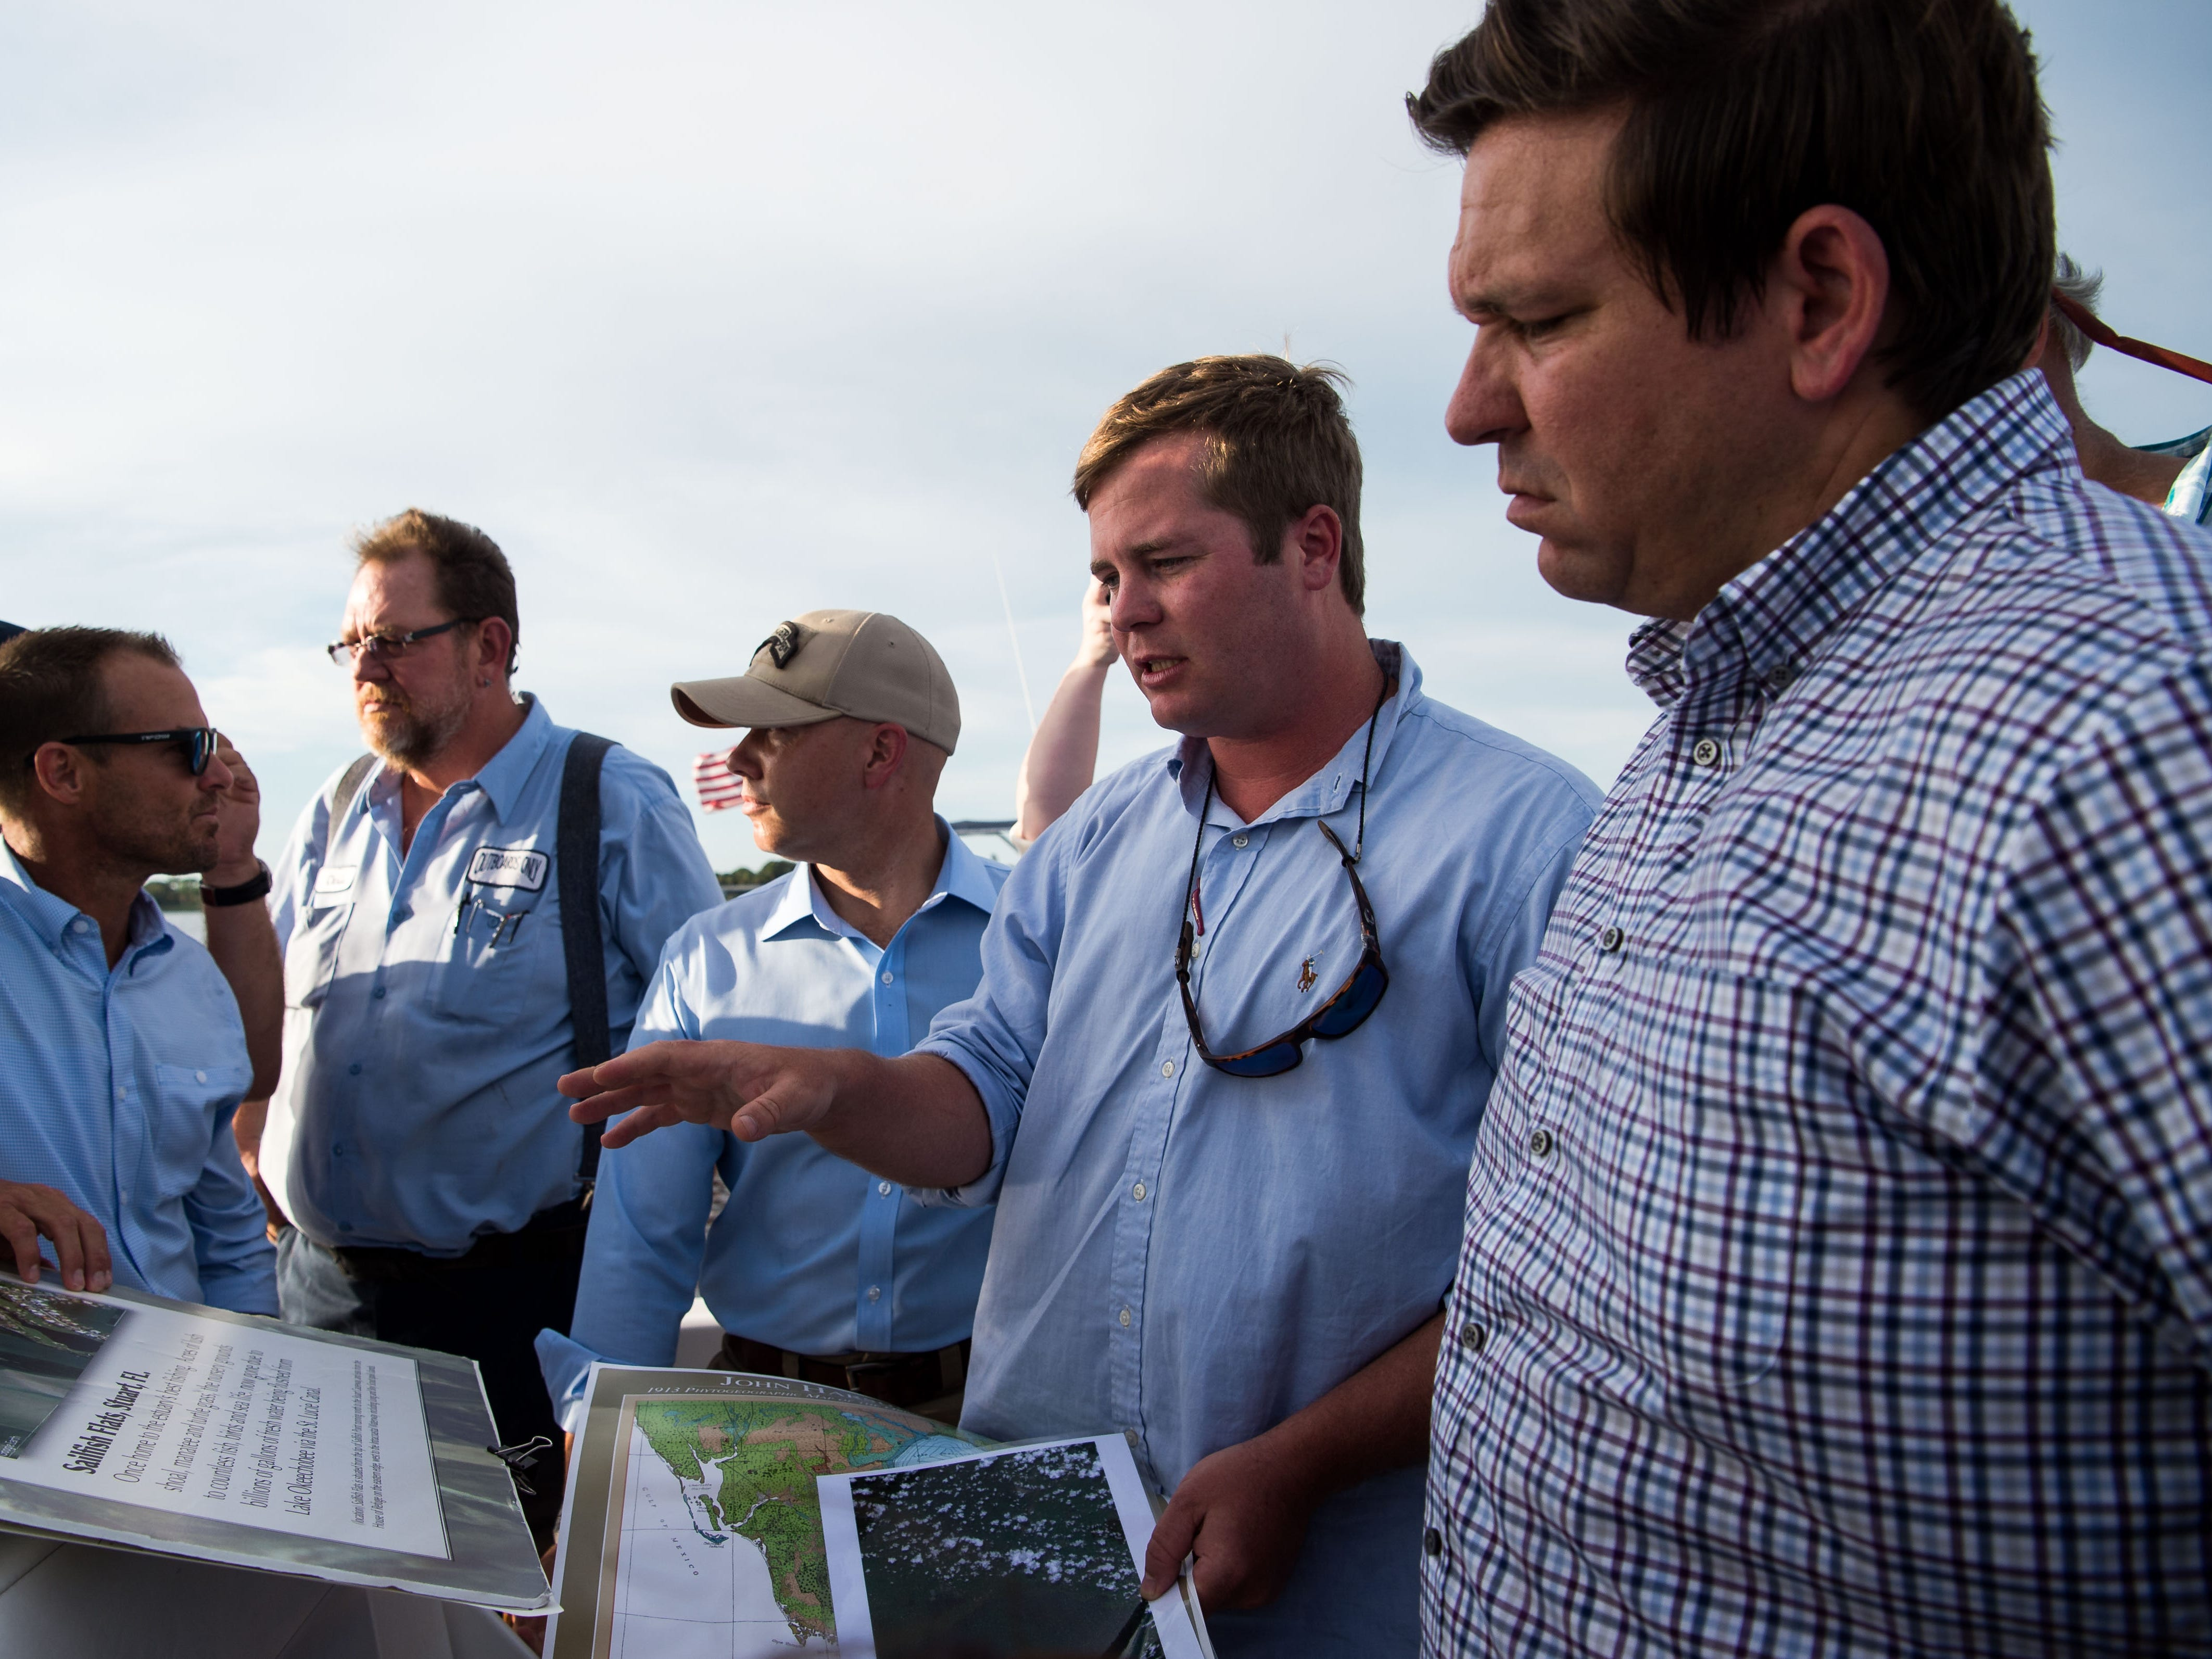 Alex Gillen (right of center), of Stuart, with Bullsugar.org, talks about algal blooms on the St. Lucie River with U.S. Rep. Ron DeSantis (far right) during a boat ride out of downtown Stuart on Monday, Aug. 20, 2018, on the St. Lucie River. DeSantis is campaigning for the Republican nomination for governor.